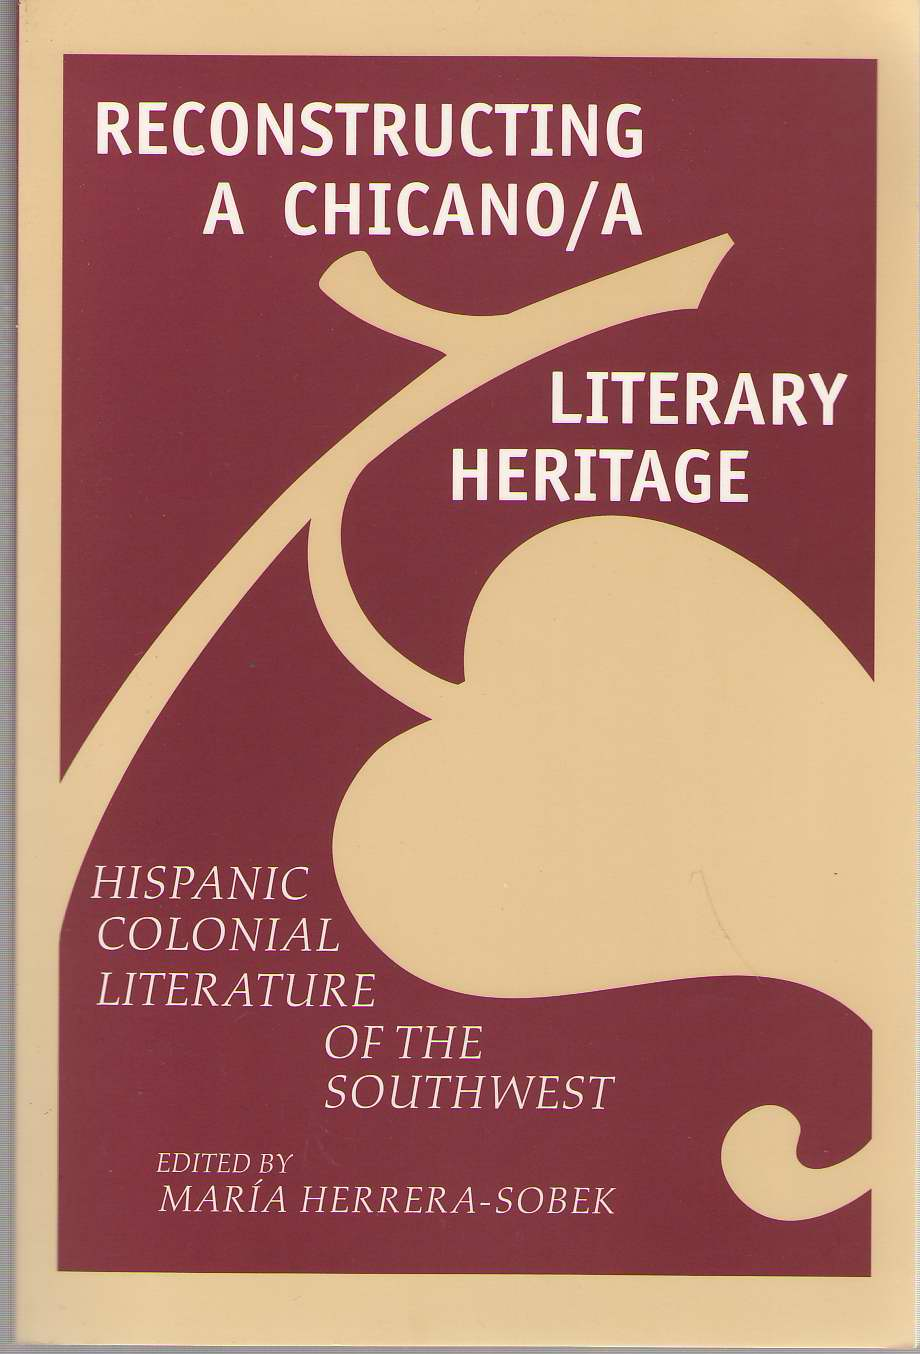 Image for Reconstructing A Chicano/a Literary Heritage Hispanic Colonial Literature of the Southwest